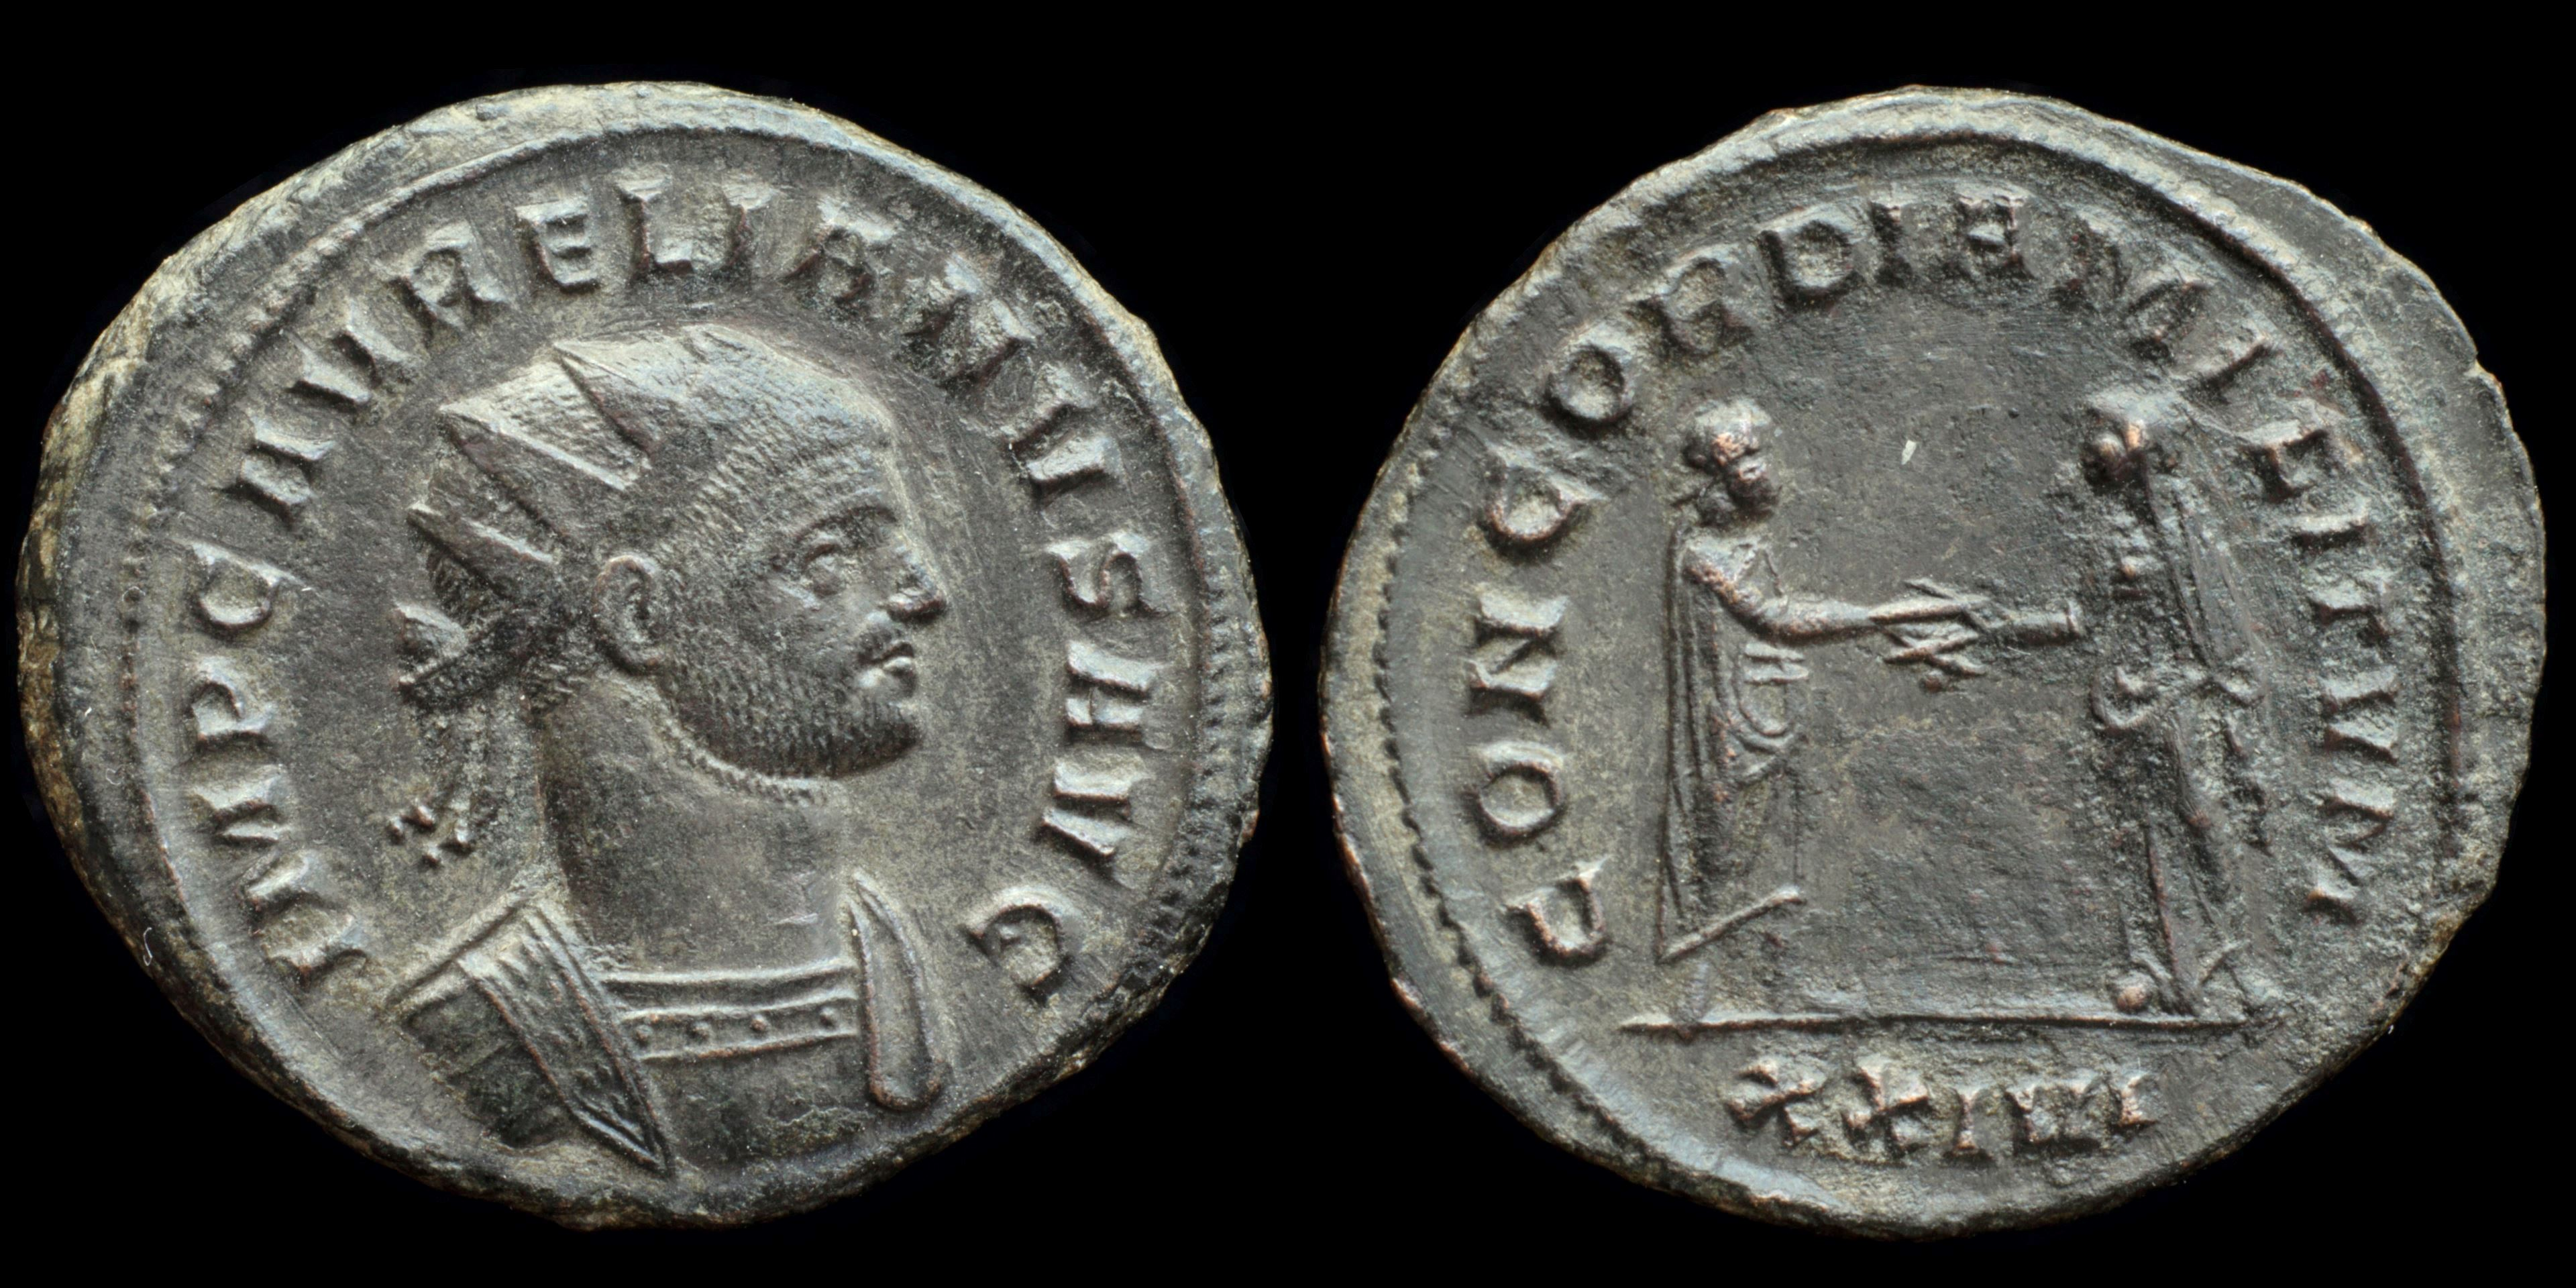 /Files/Images/Coinsite/CoinDB/1355__Aurelian_2389.jpg